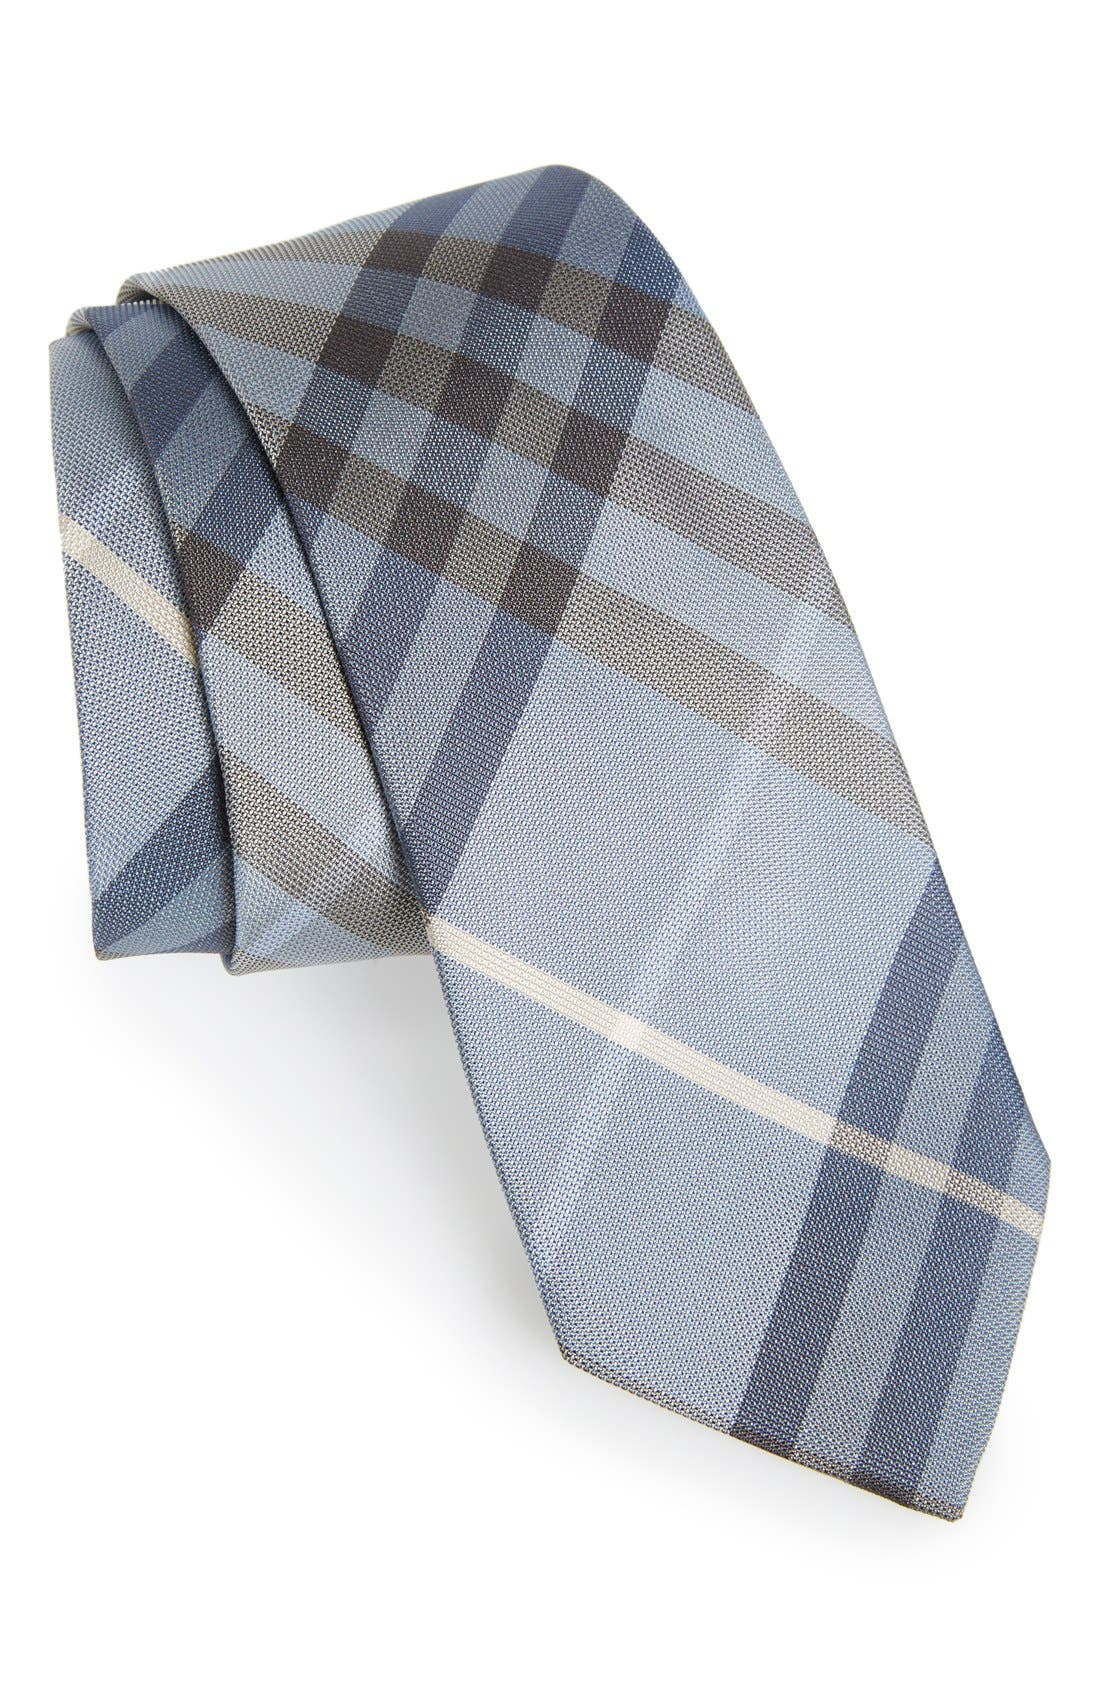 Alternate Image 1 Selected - Burberry 'Manston' Check Silk Tie